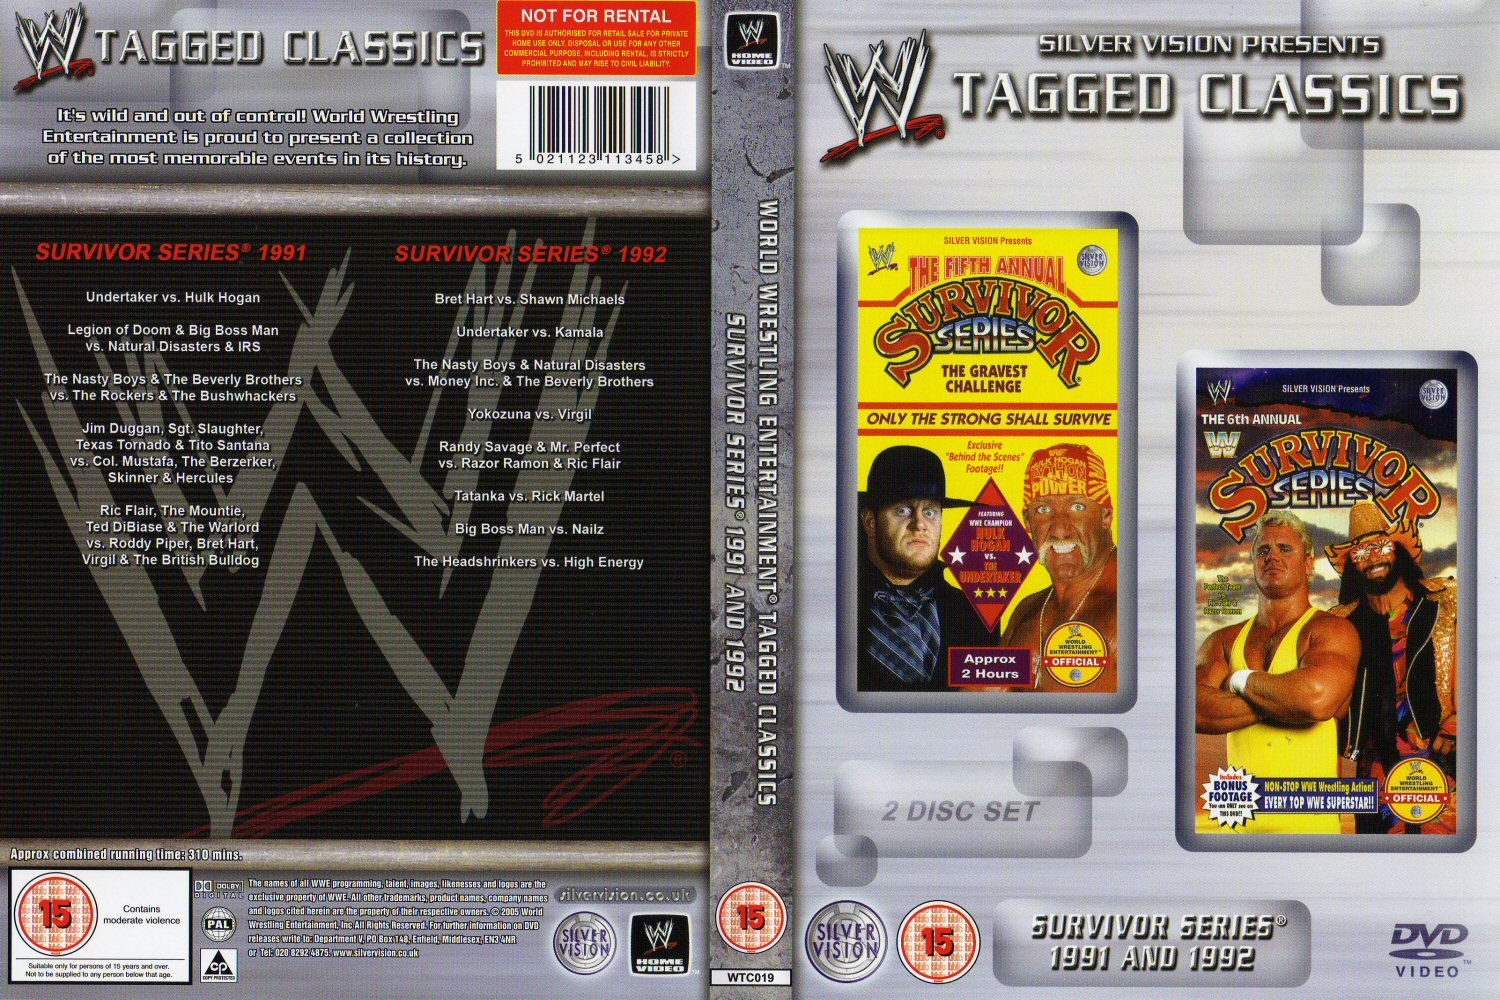 Wwe_Tagged_Classics_Survivor_Series_91-92_Uk-front